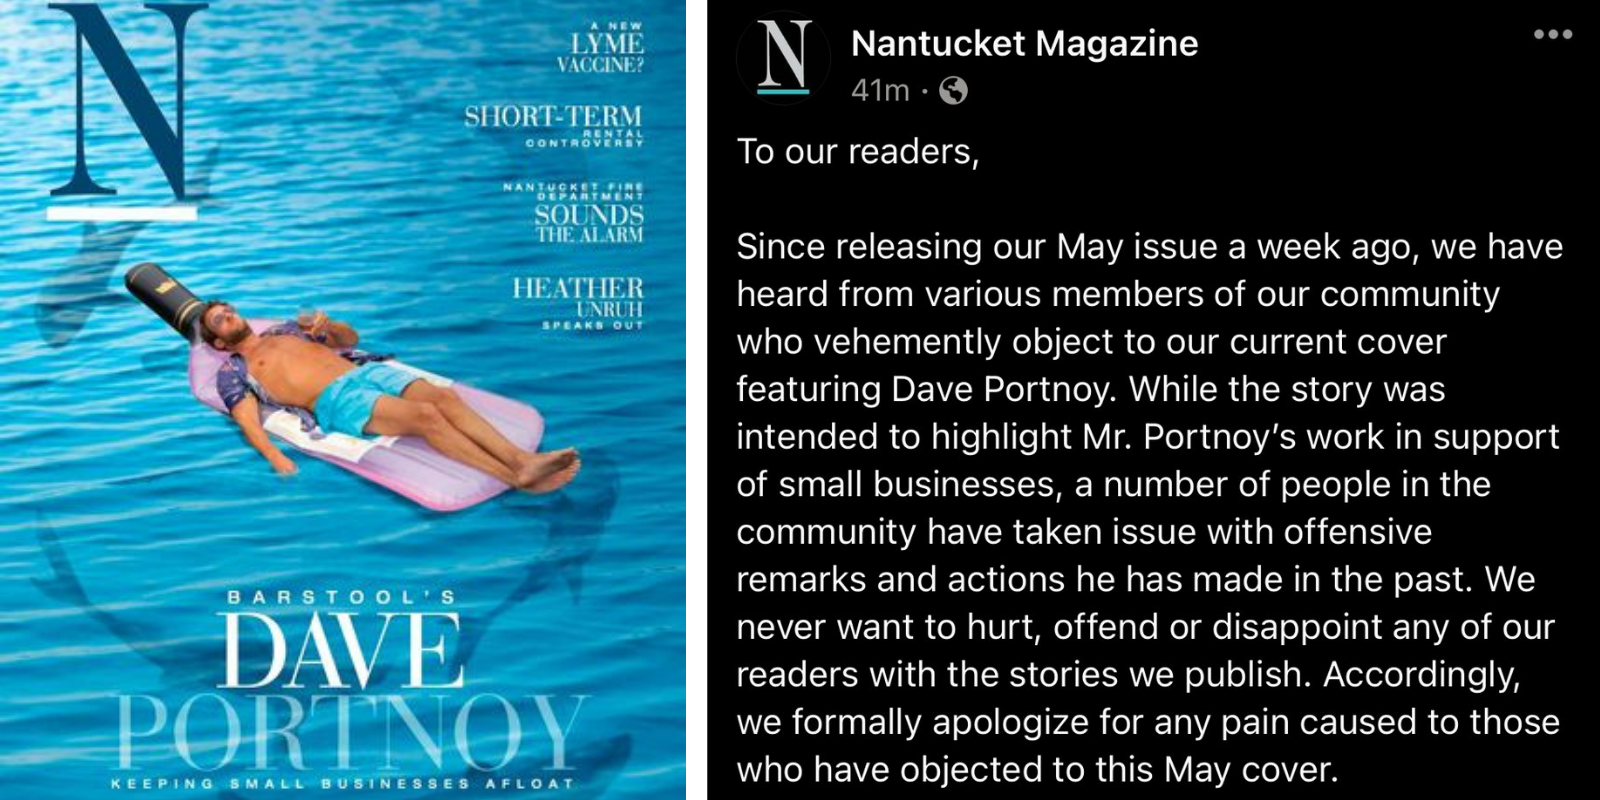 Nantucket Magazine issues pathetic, grovelling apology to readers triggered by Dave Portnoy cover